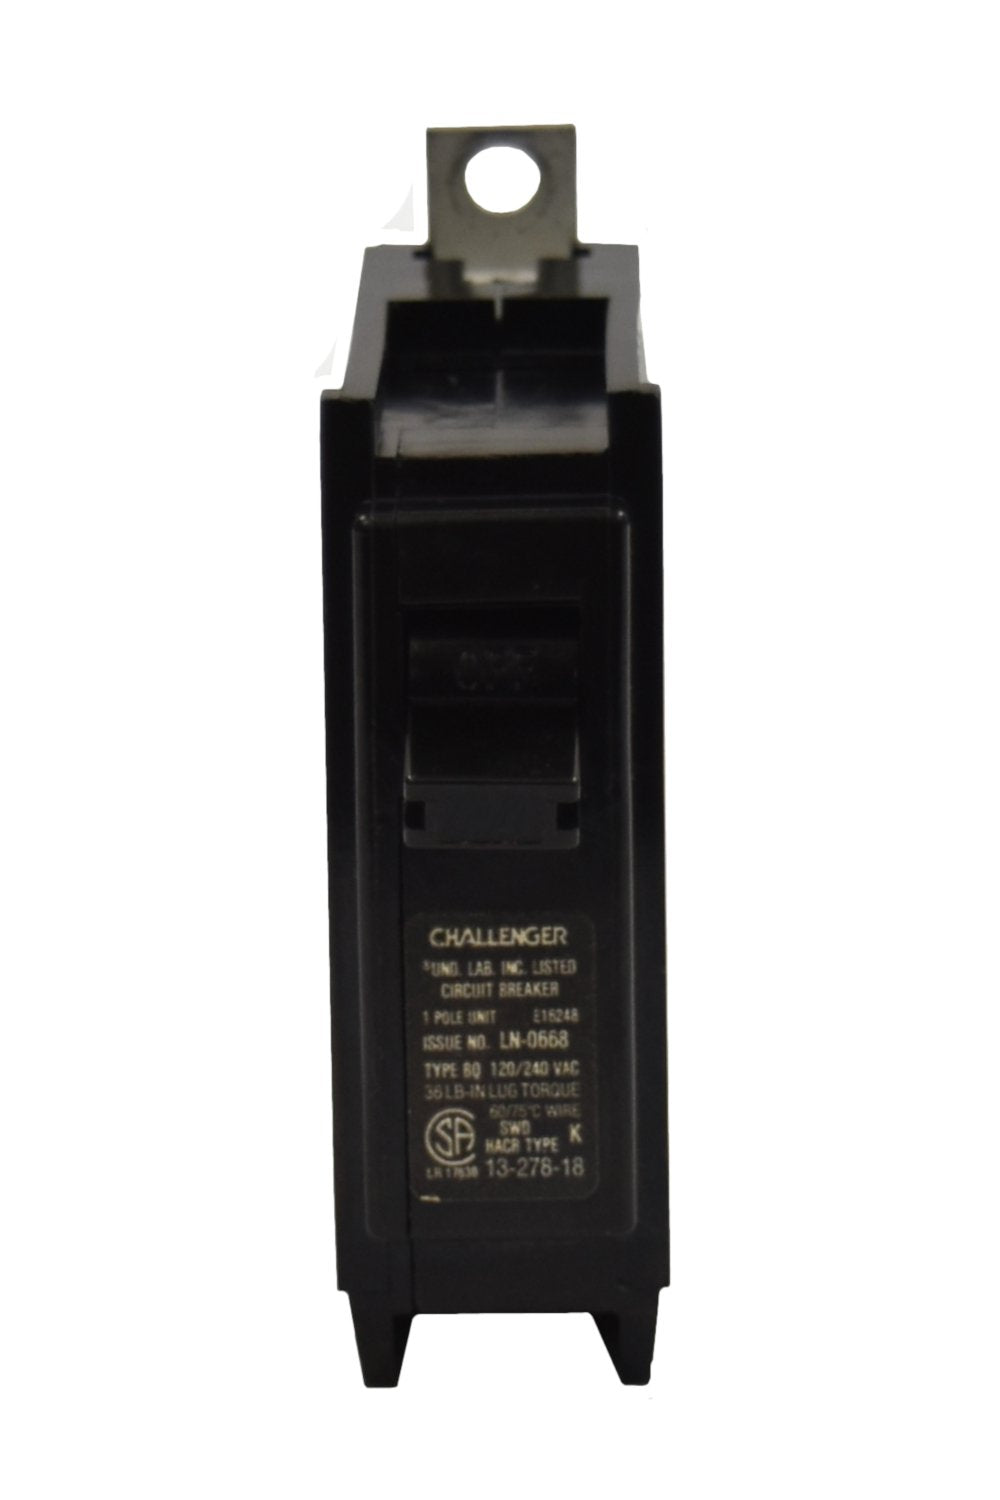 Challenger BQ1C040 Circuit Breakers